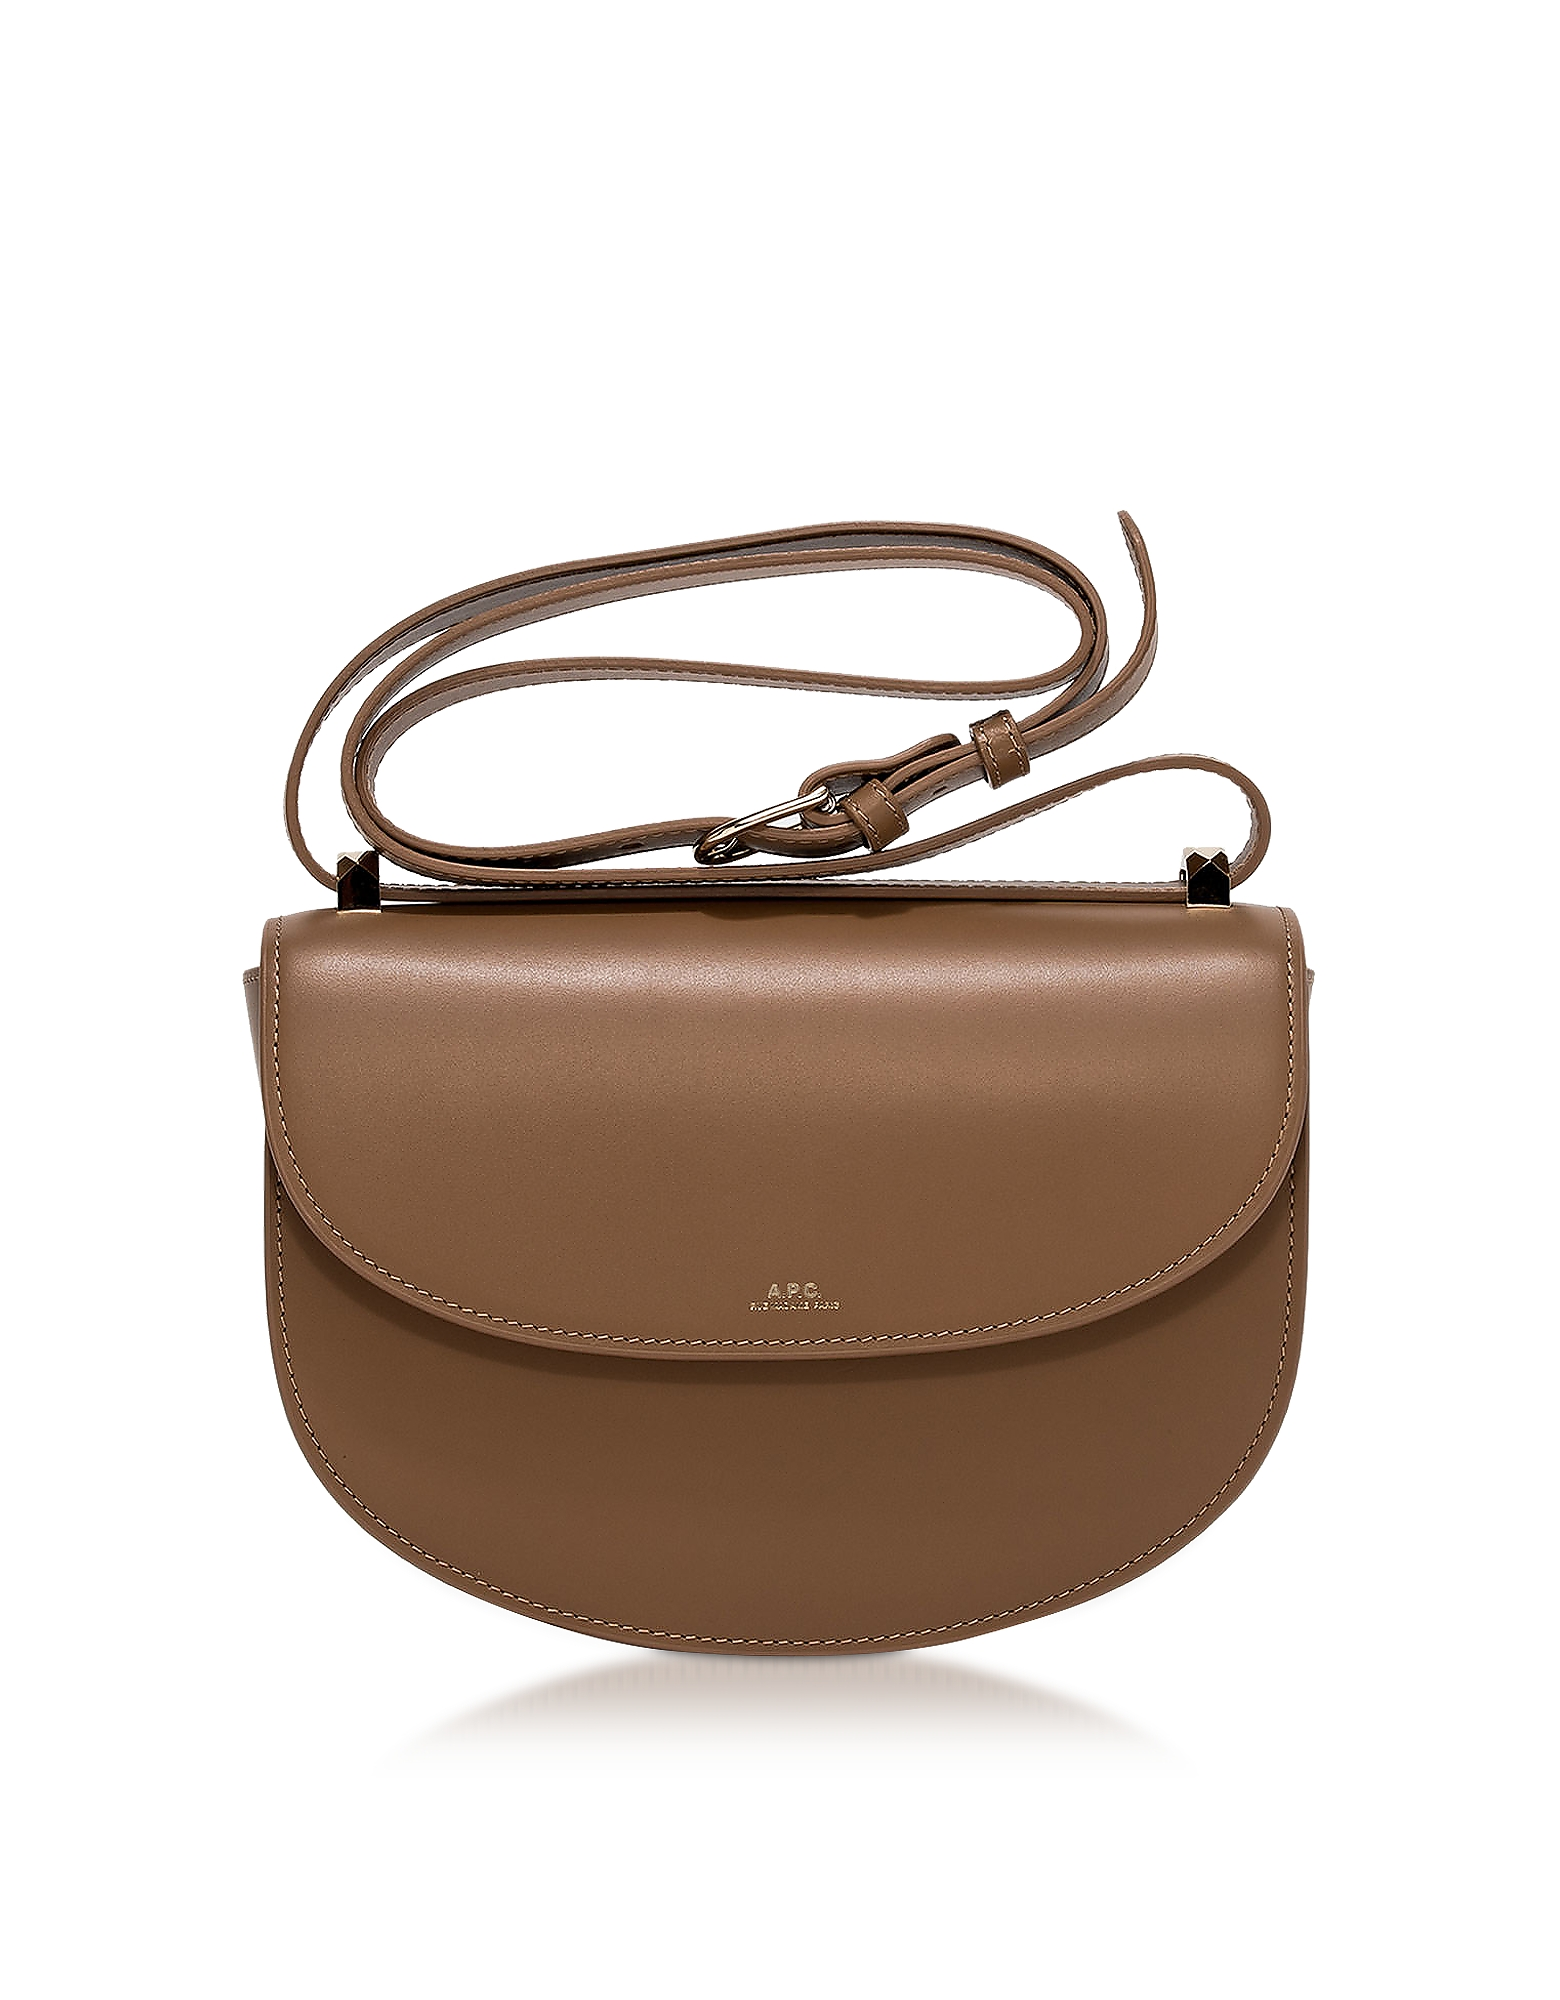 Geneve Smooth Leather Crossbody